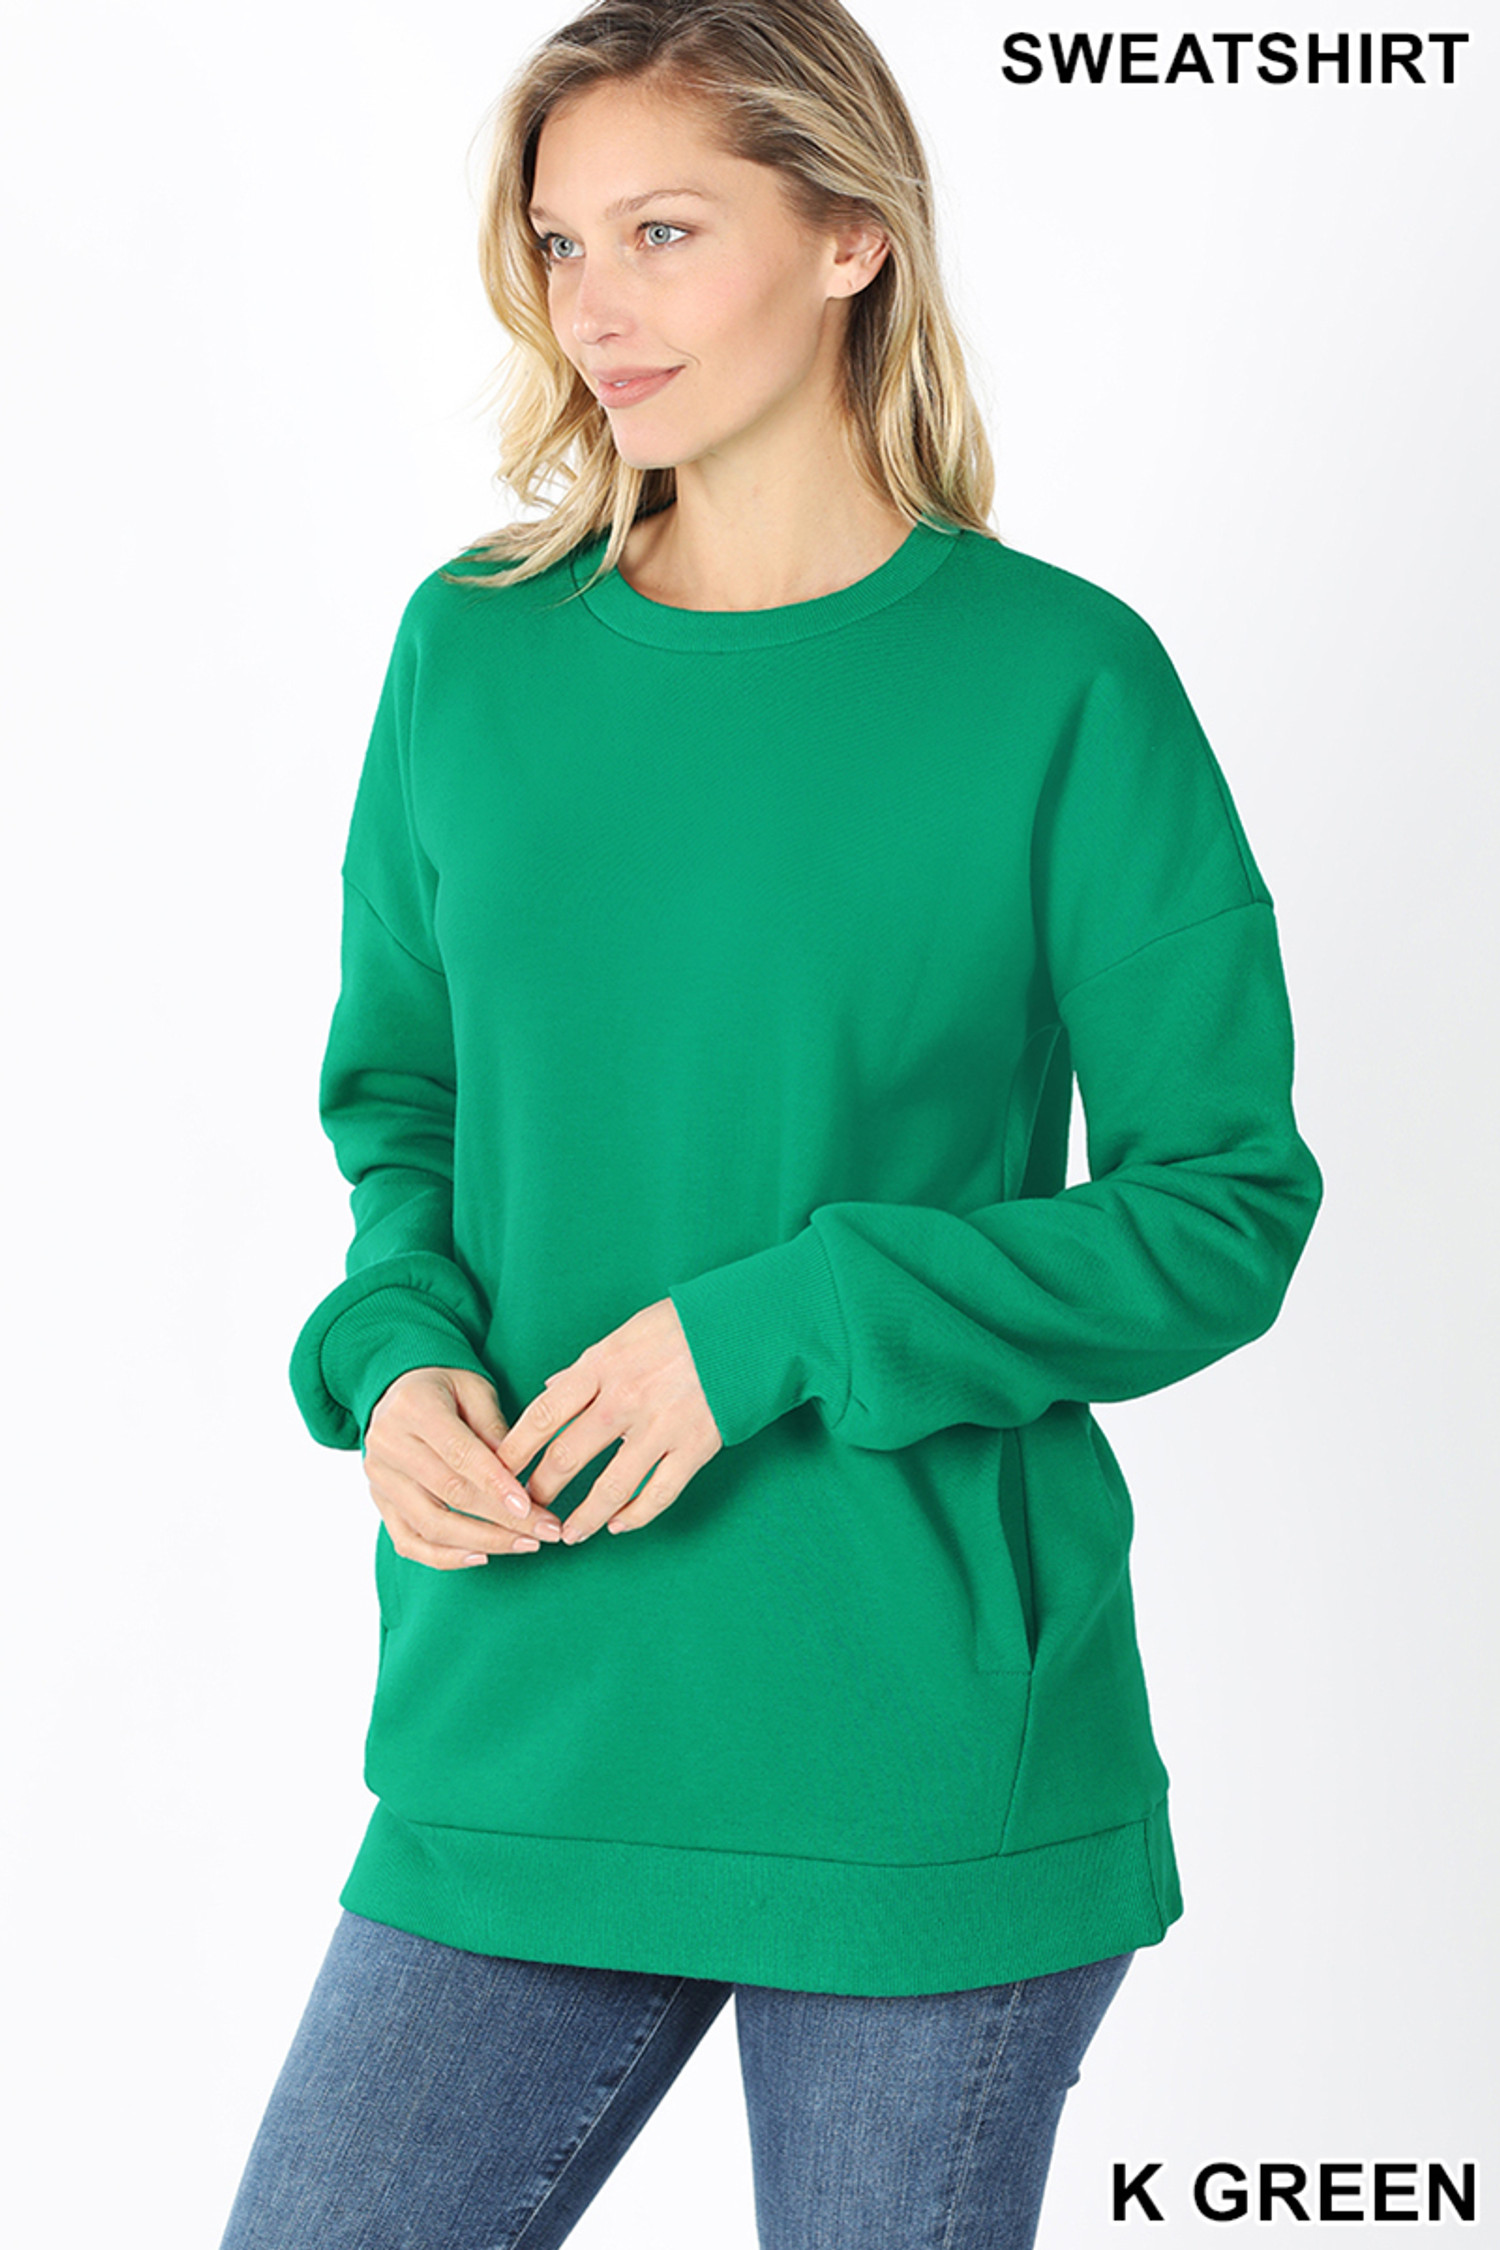 Slightly turned image of Kelly Green Round Crew Neck Sweatshirt with Side Pockets